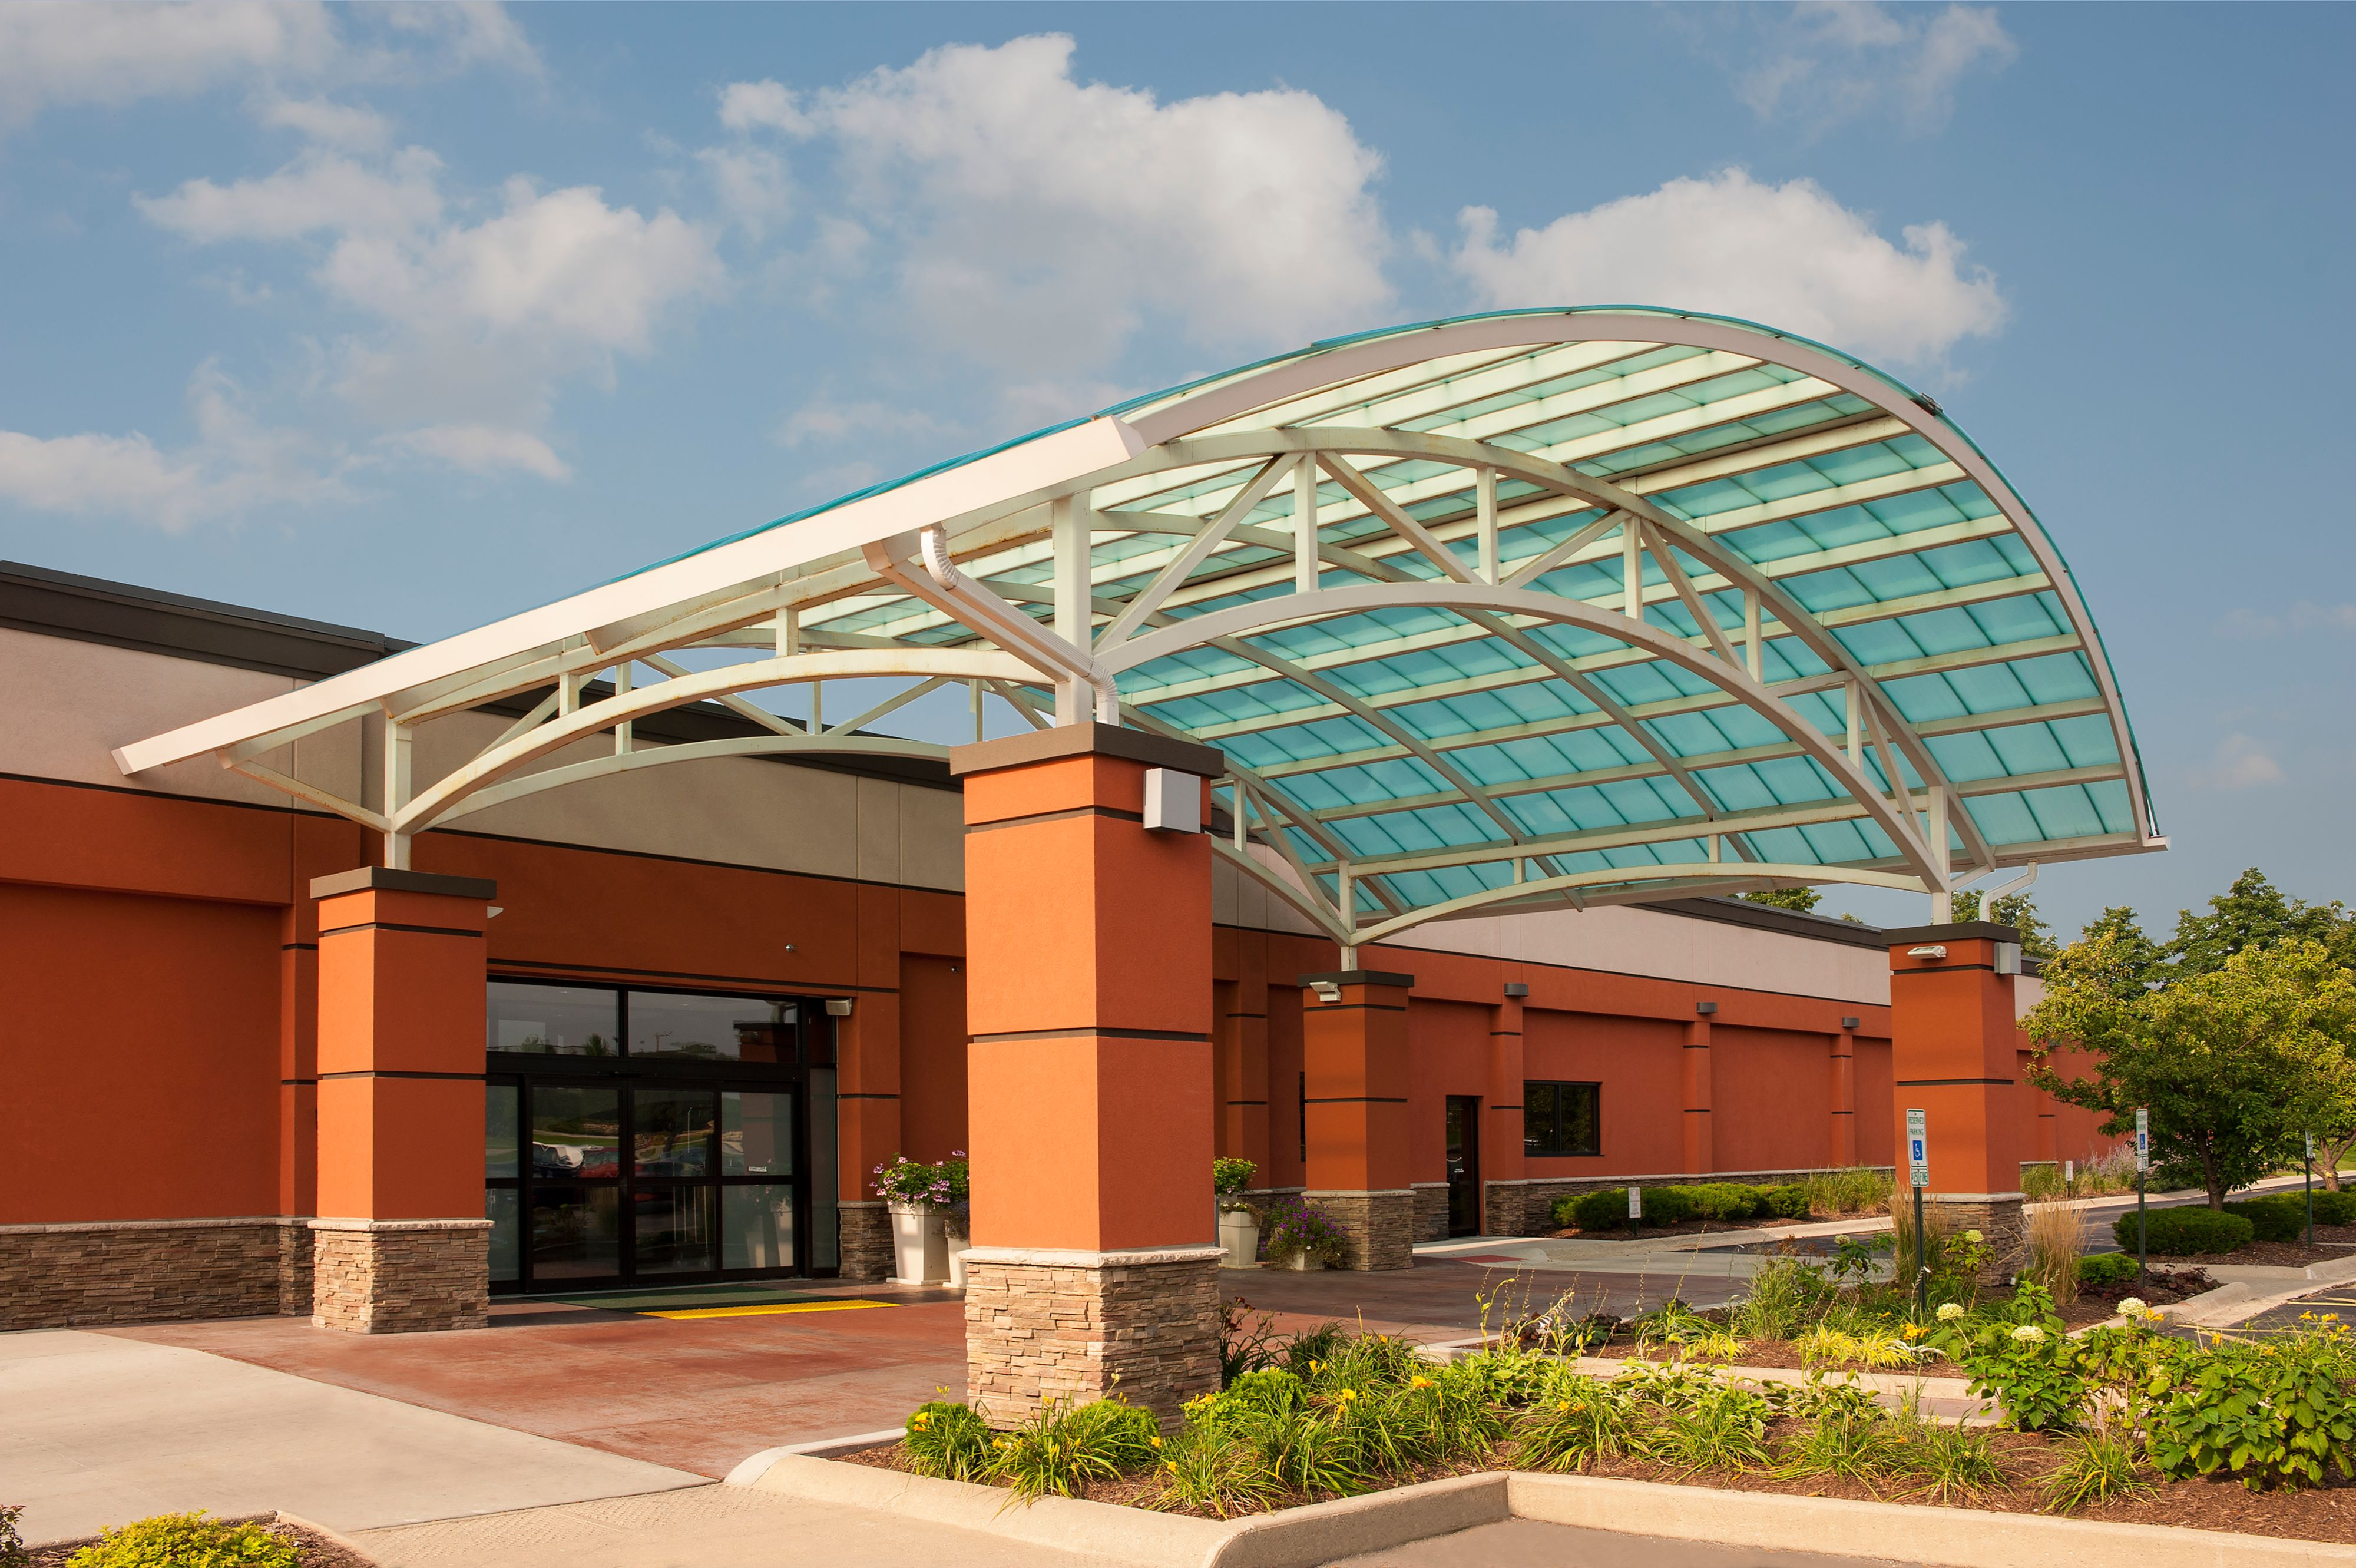 Chicago airport hotel chicago marriott ohare autos post for Chicago airport hotels